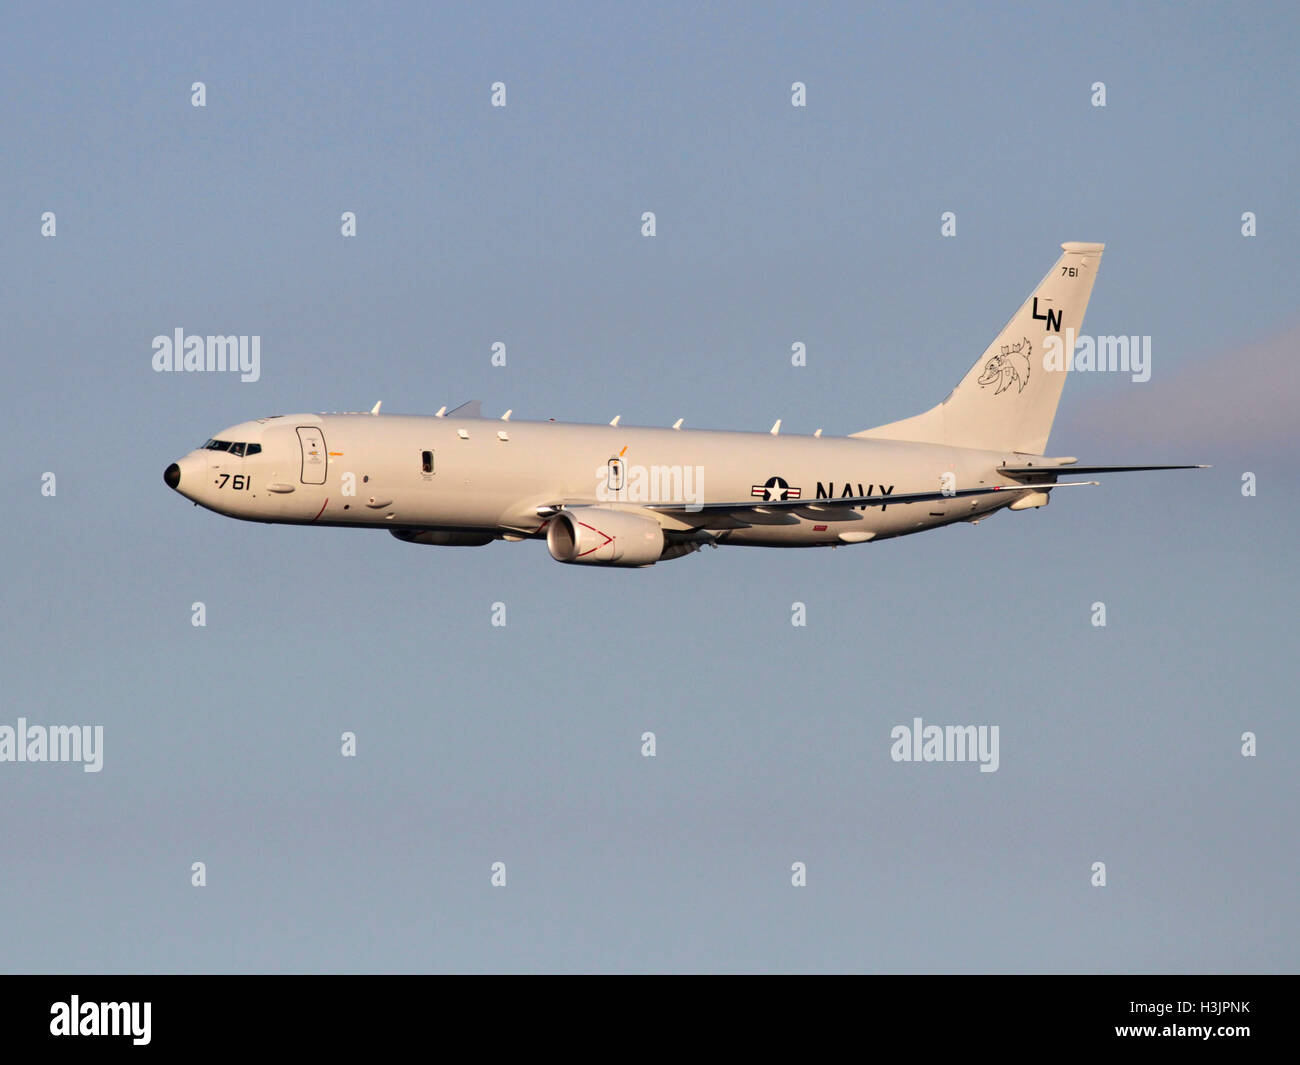 Advanced technology in modern warfare. Boeing P-8A Poseidon maritime patrol aircraft of the United States Navy in - Stock Image